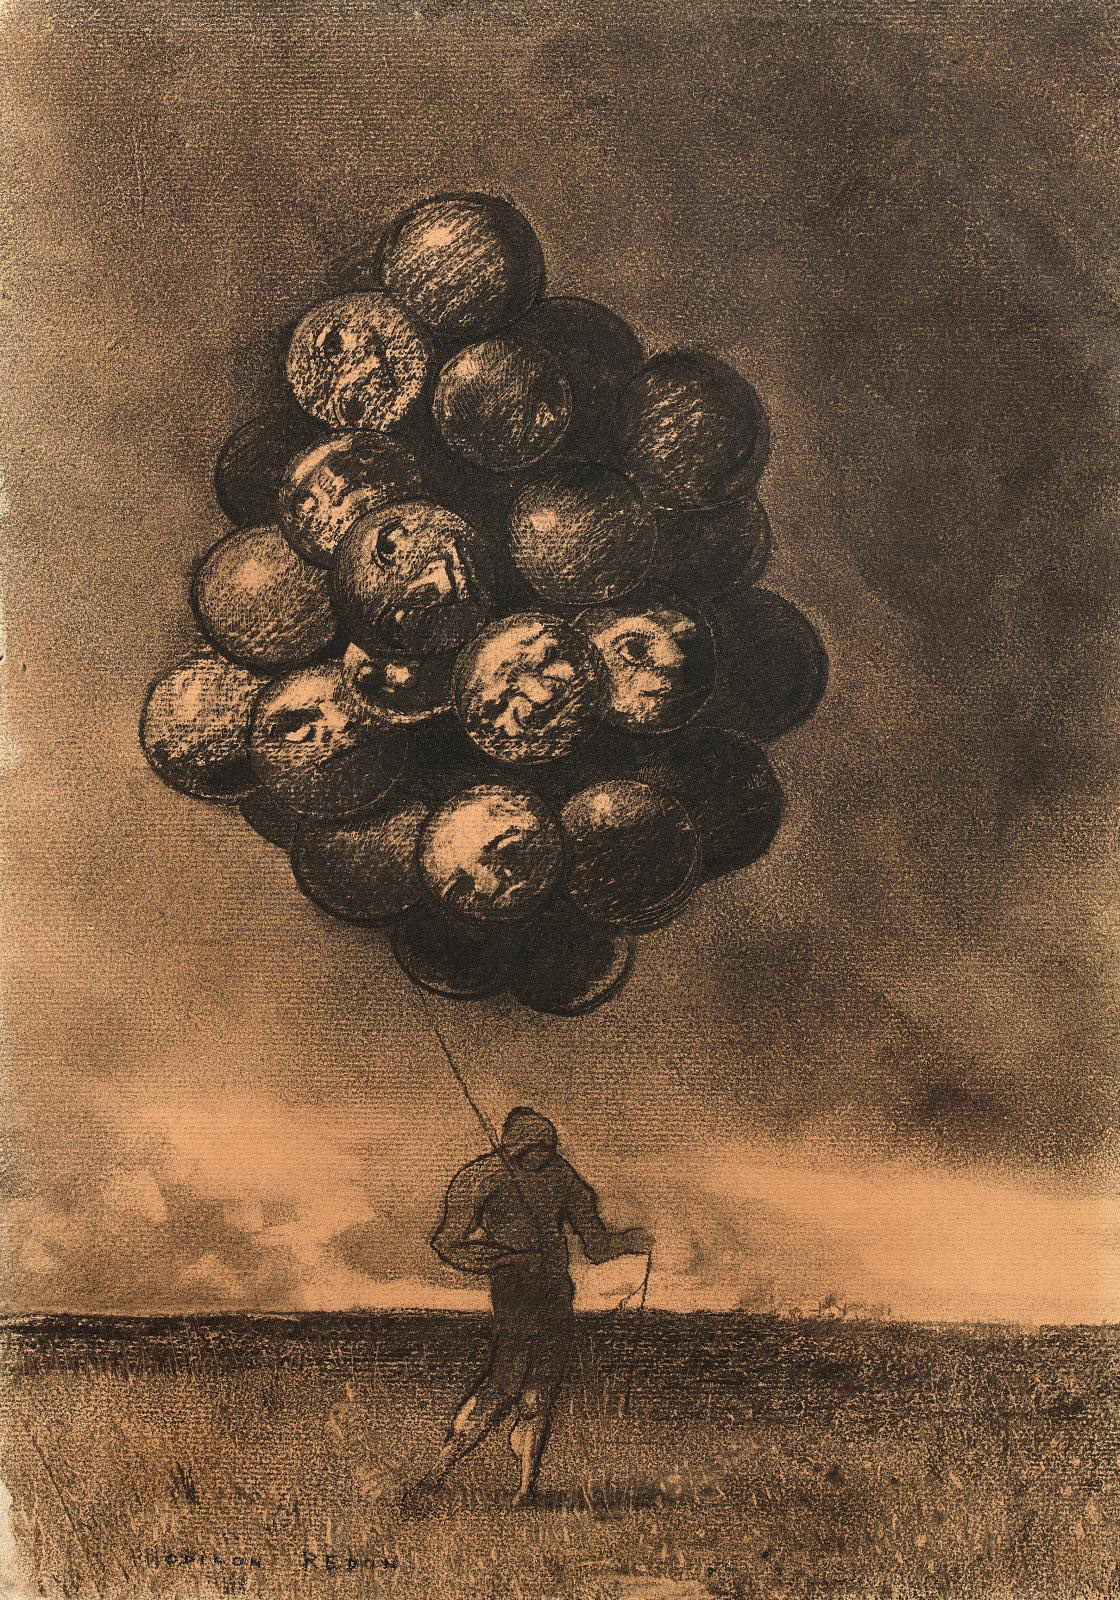 Odilon Redon (1840-1916), La Grappe ou Le Marchand de ballons, charcoal and stump drawing, 38.5 x 27.5 cm/15.2 x 10.8 in.Result: €317,500